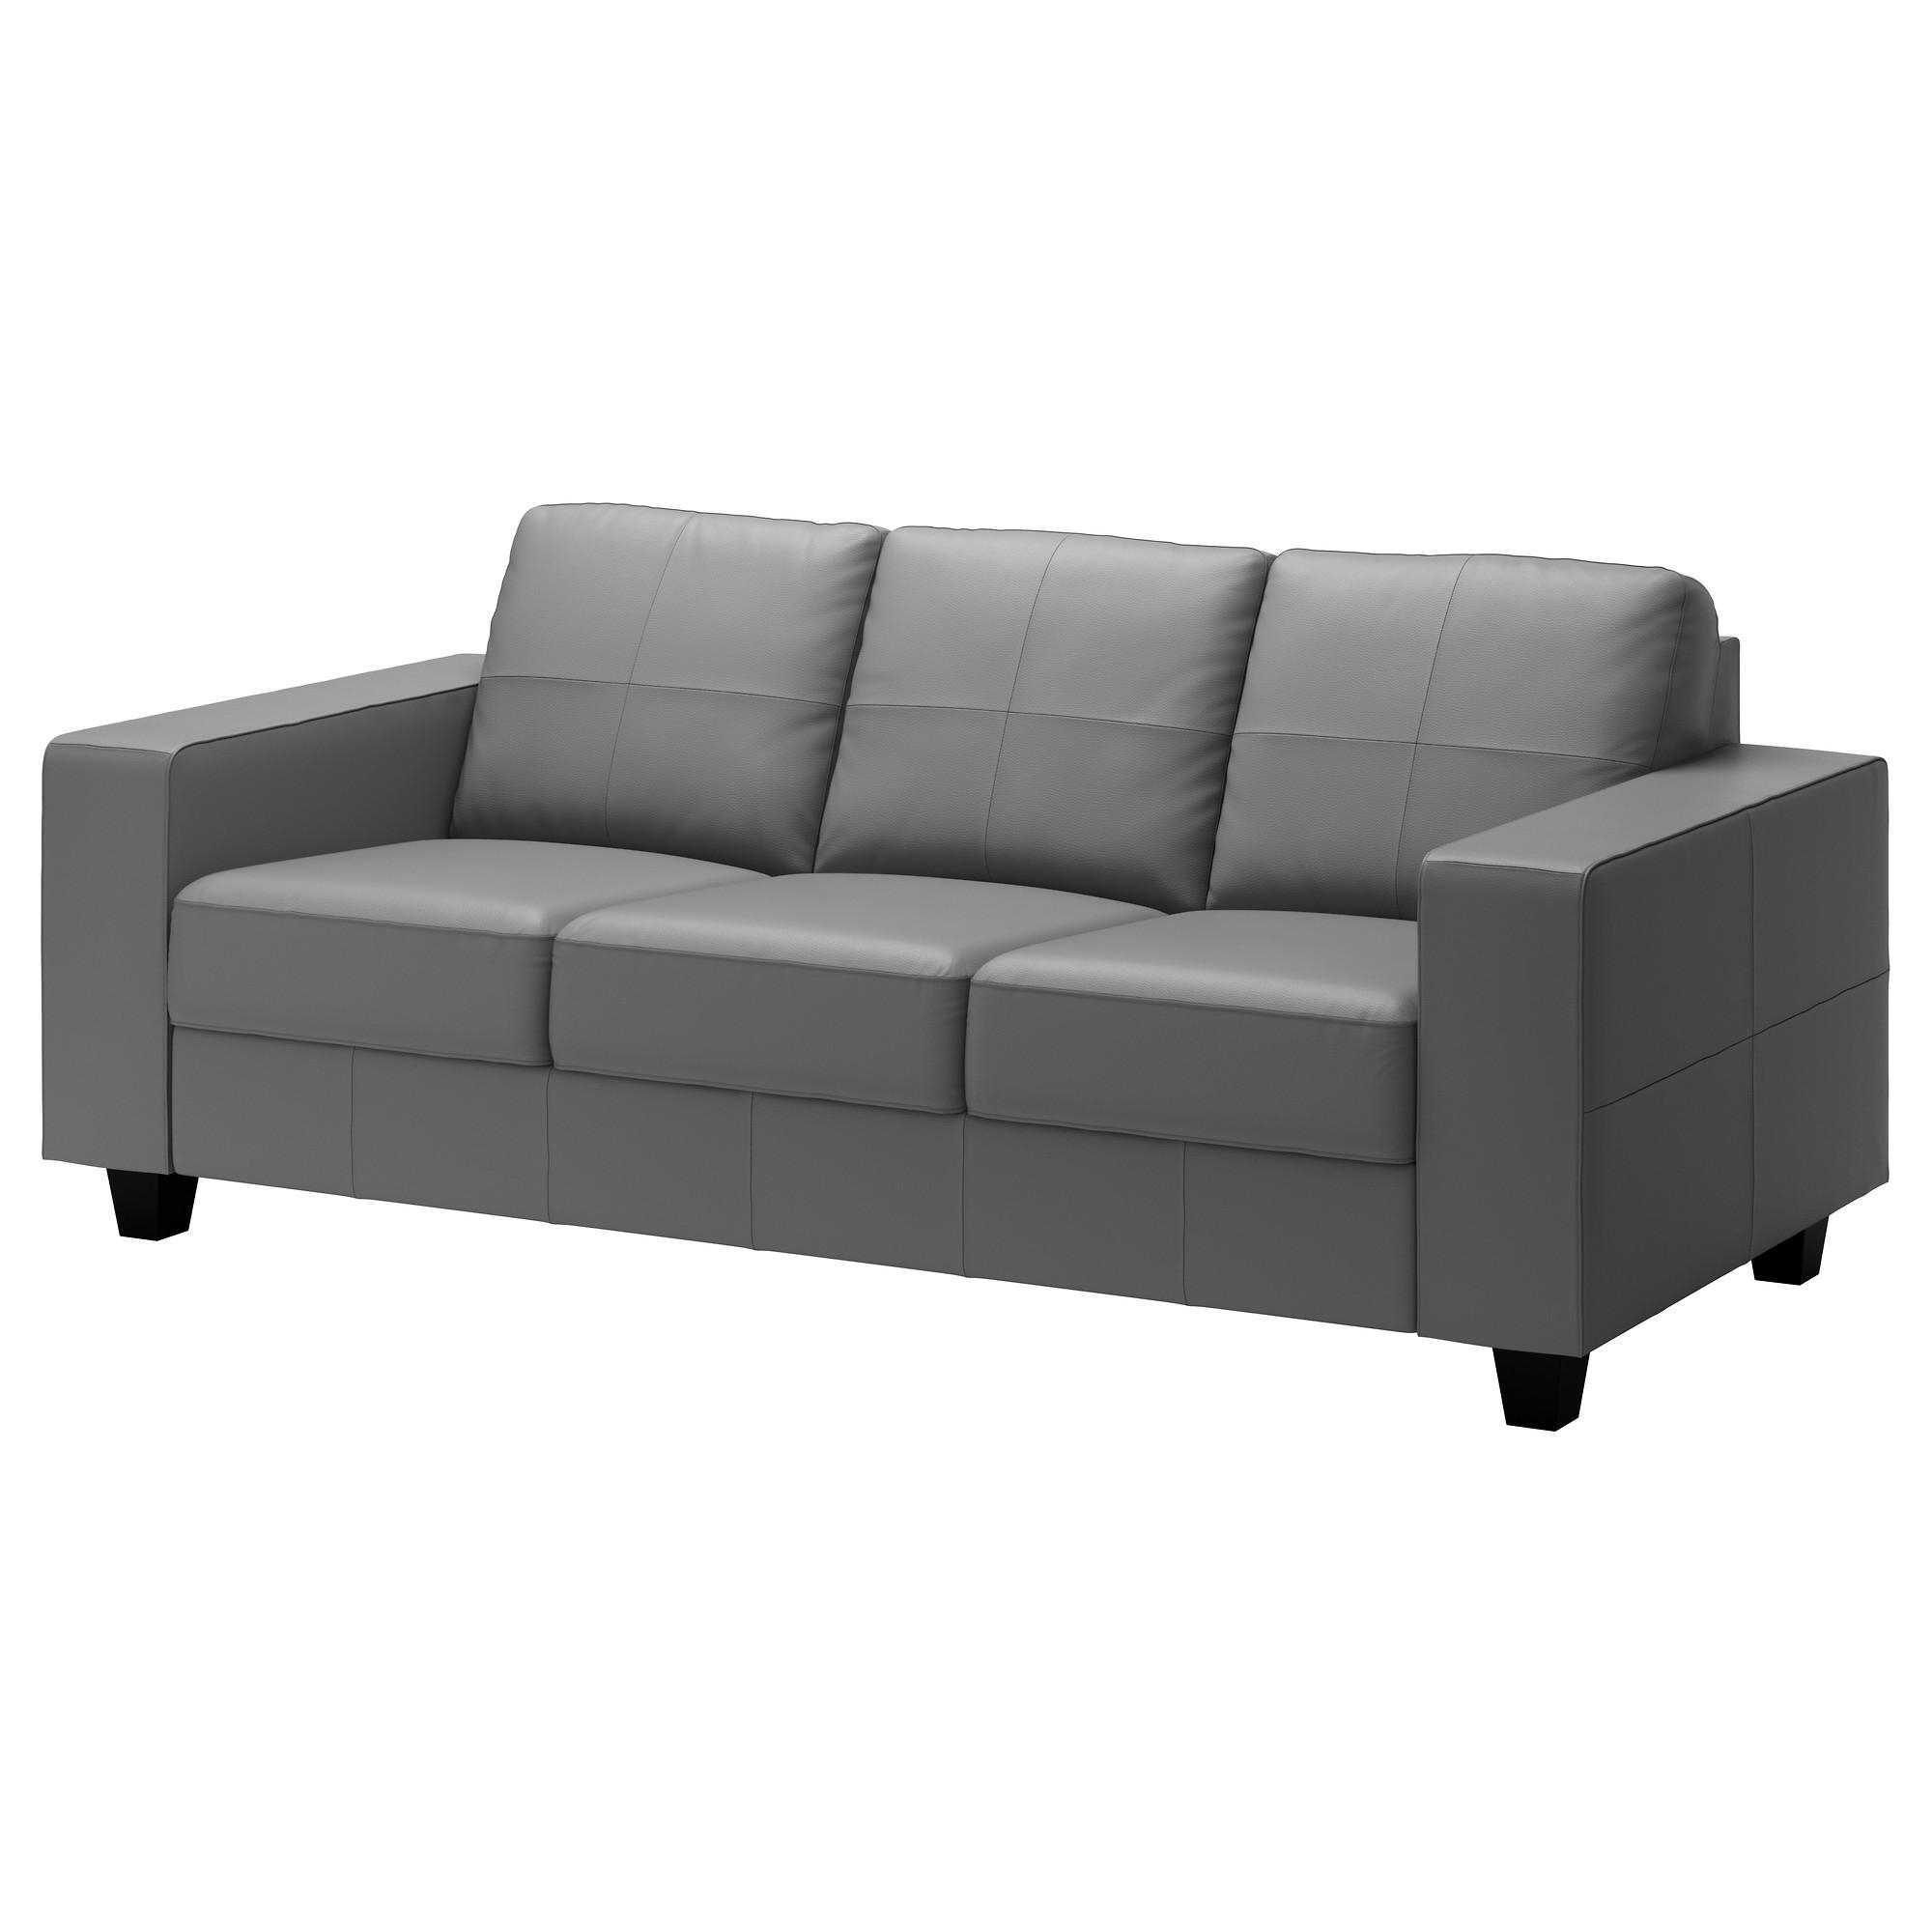 Sofas: Cheap Sofa Sleepers | Futon Sofa Beds | Convertible Sofa Bed Intended For Single Chair Sofa Bed (Image 18 of 20)